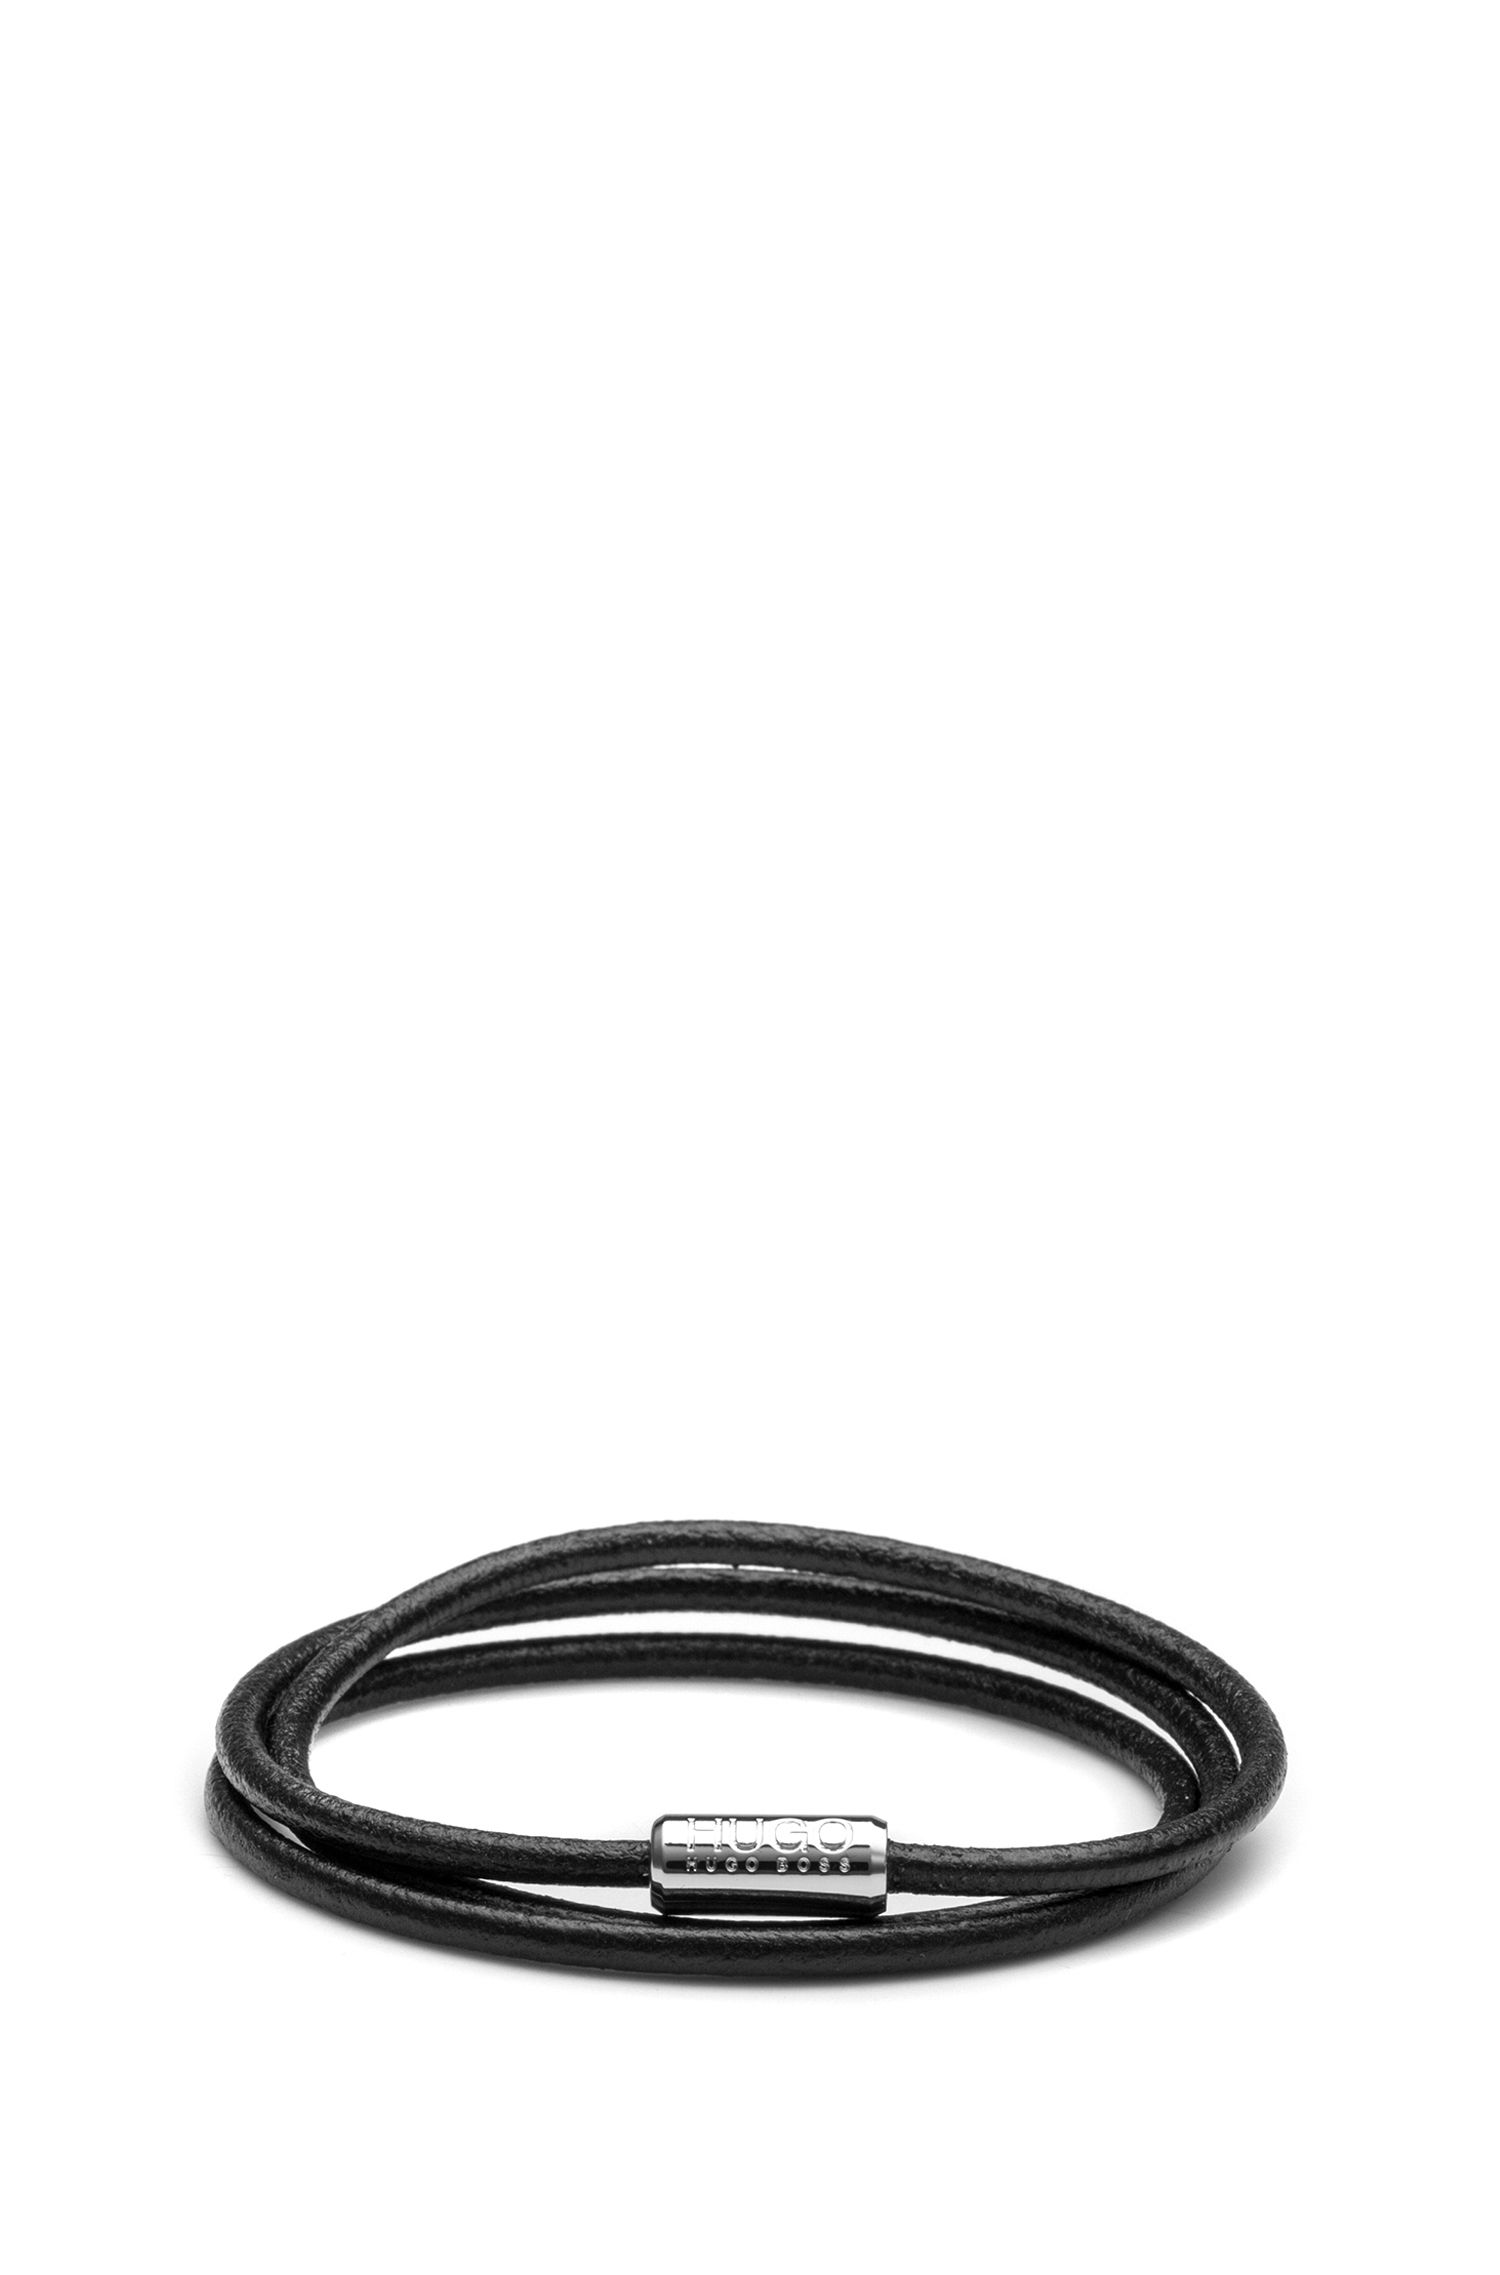 Italian-leather cord bracelet with magnetic closure, Black